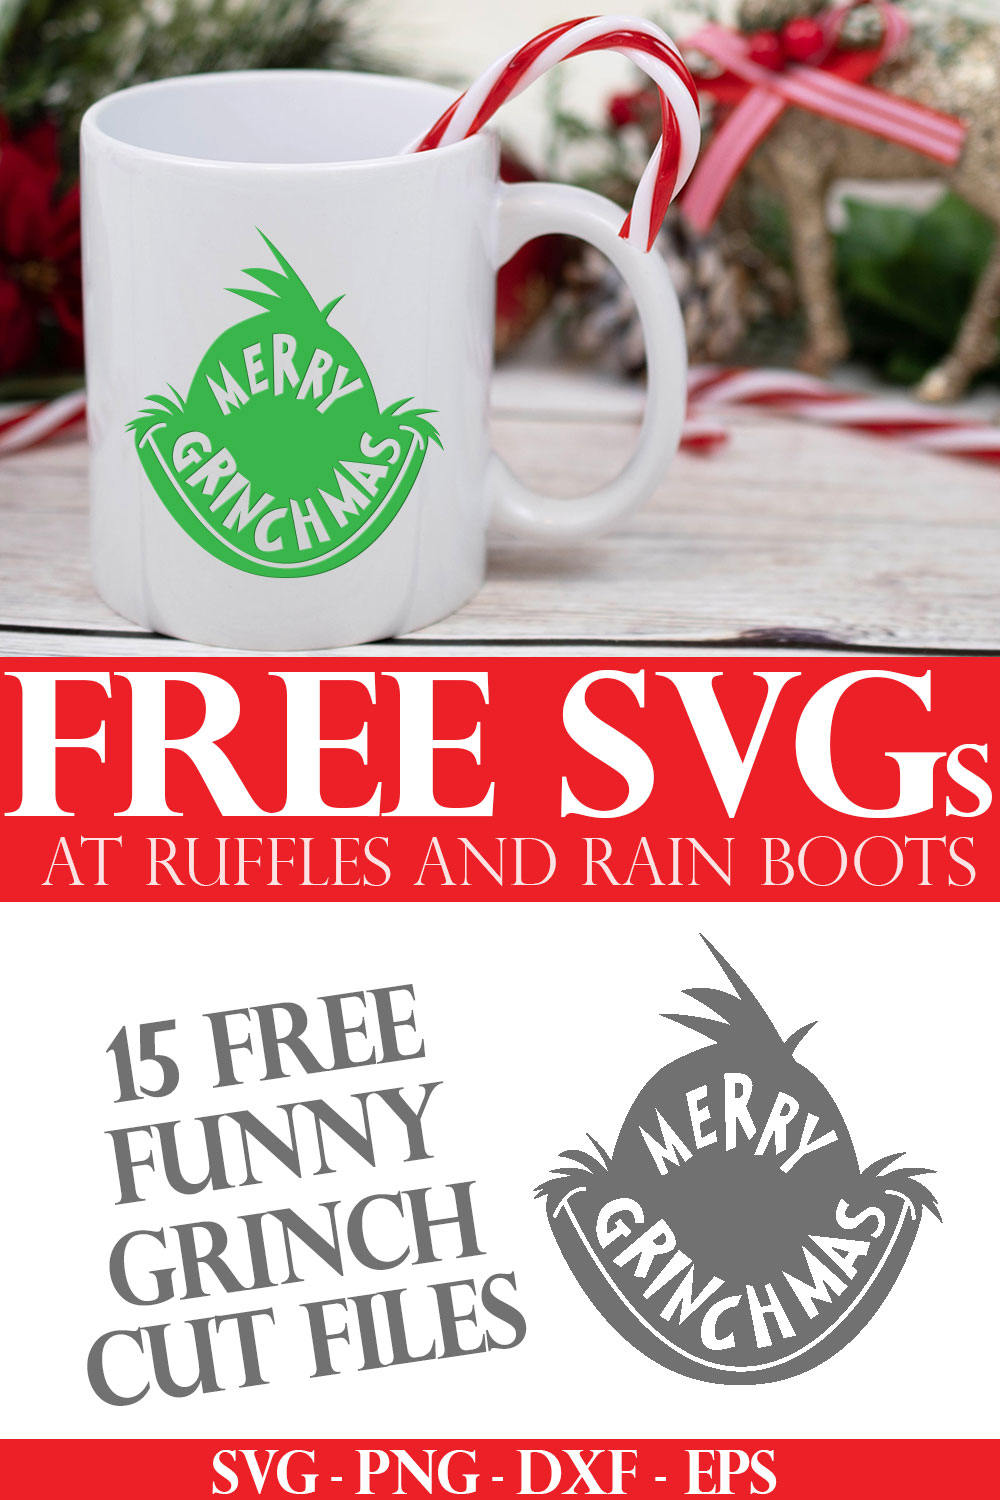 adorable merry grinchmas coffee mug on holiday background with text which reads free svg for cricut from Ruffles and Rain Boots